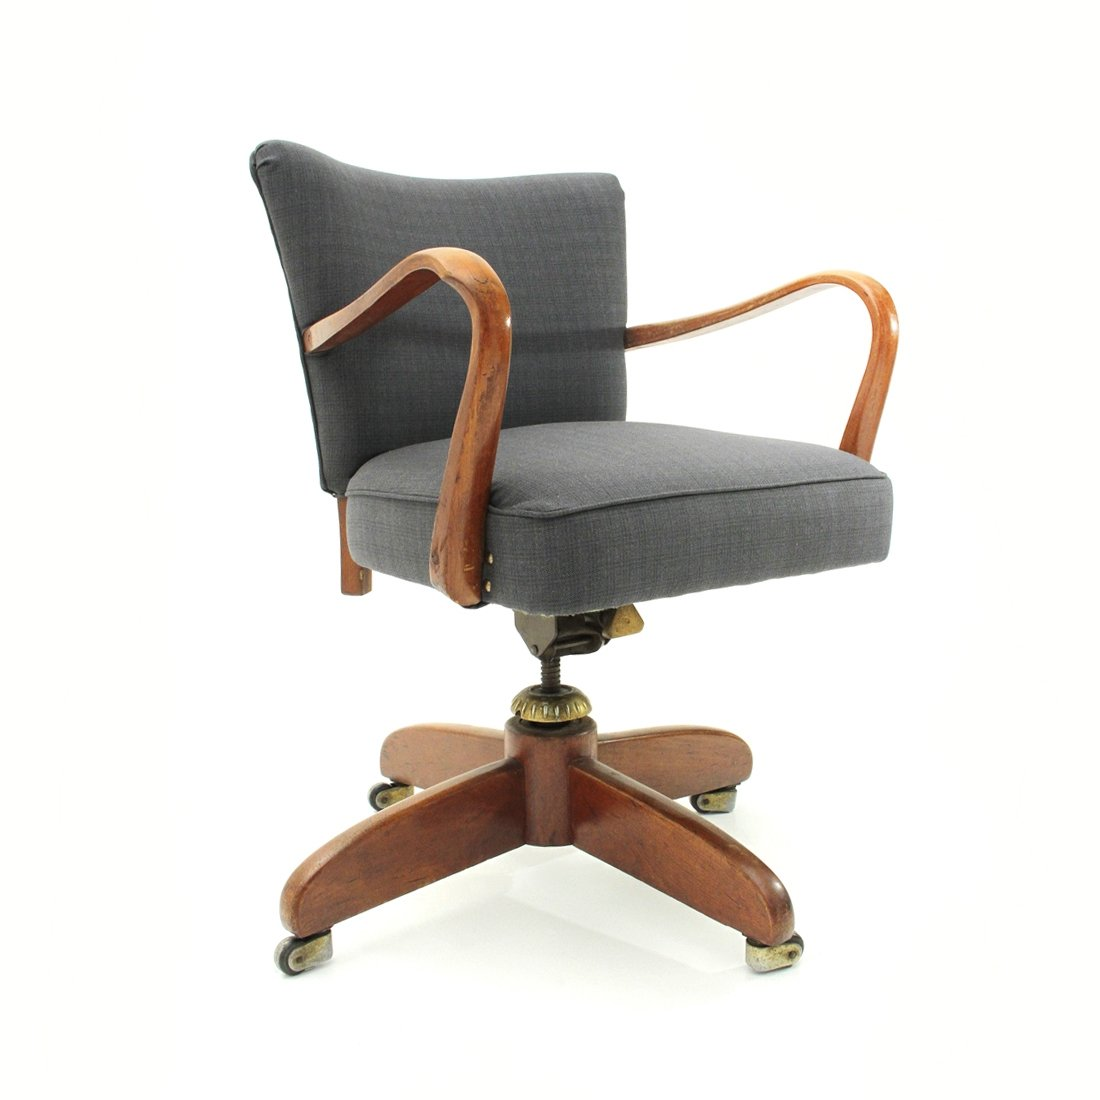 vintage office chairs. Vintage Office Chair, 1940s Chairs A